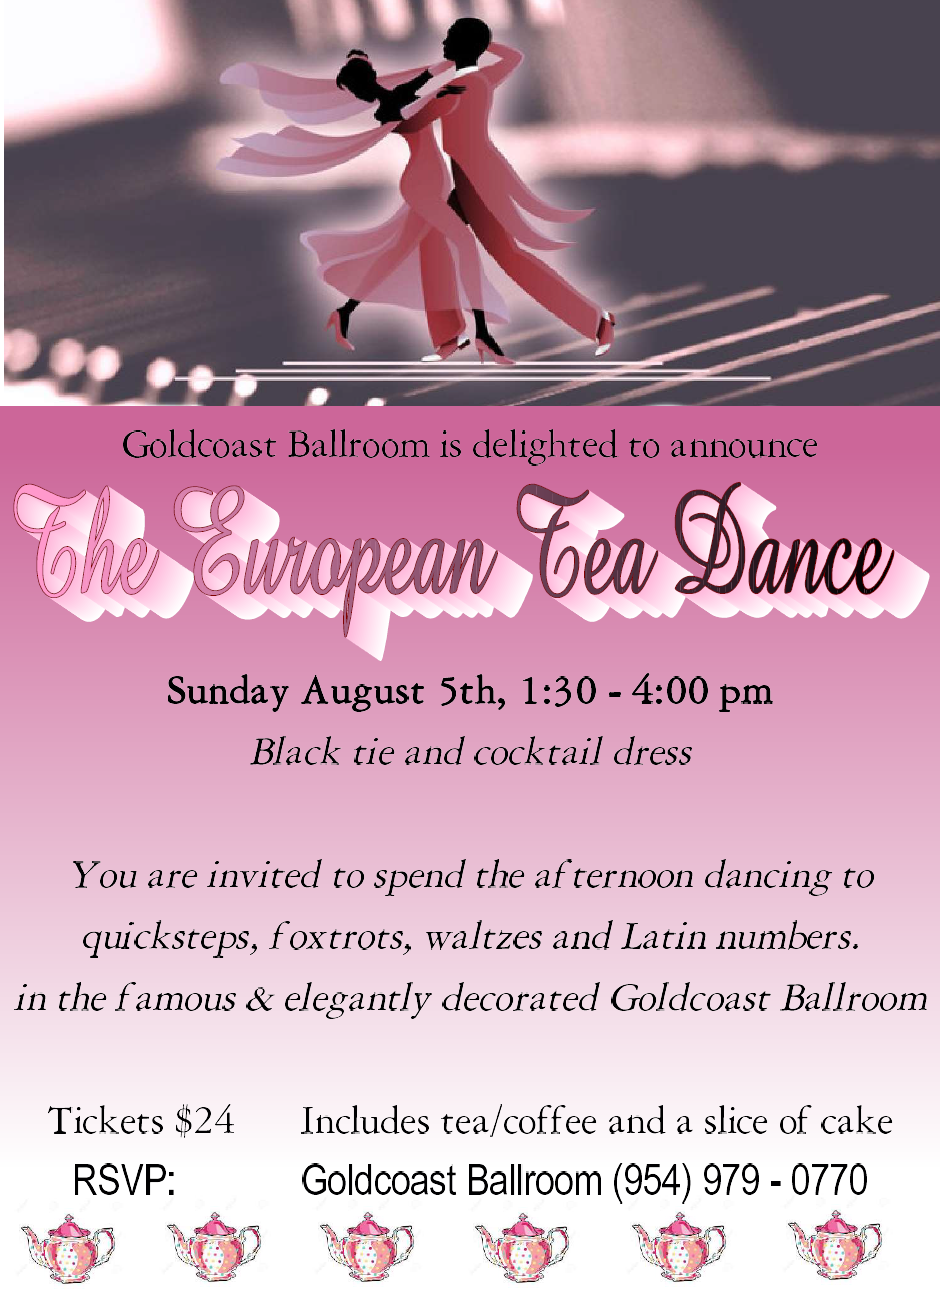 European Tea Dance - Sunday, April 5, 2018